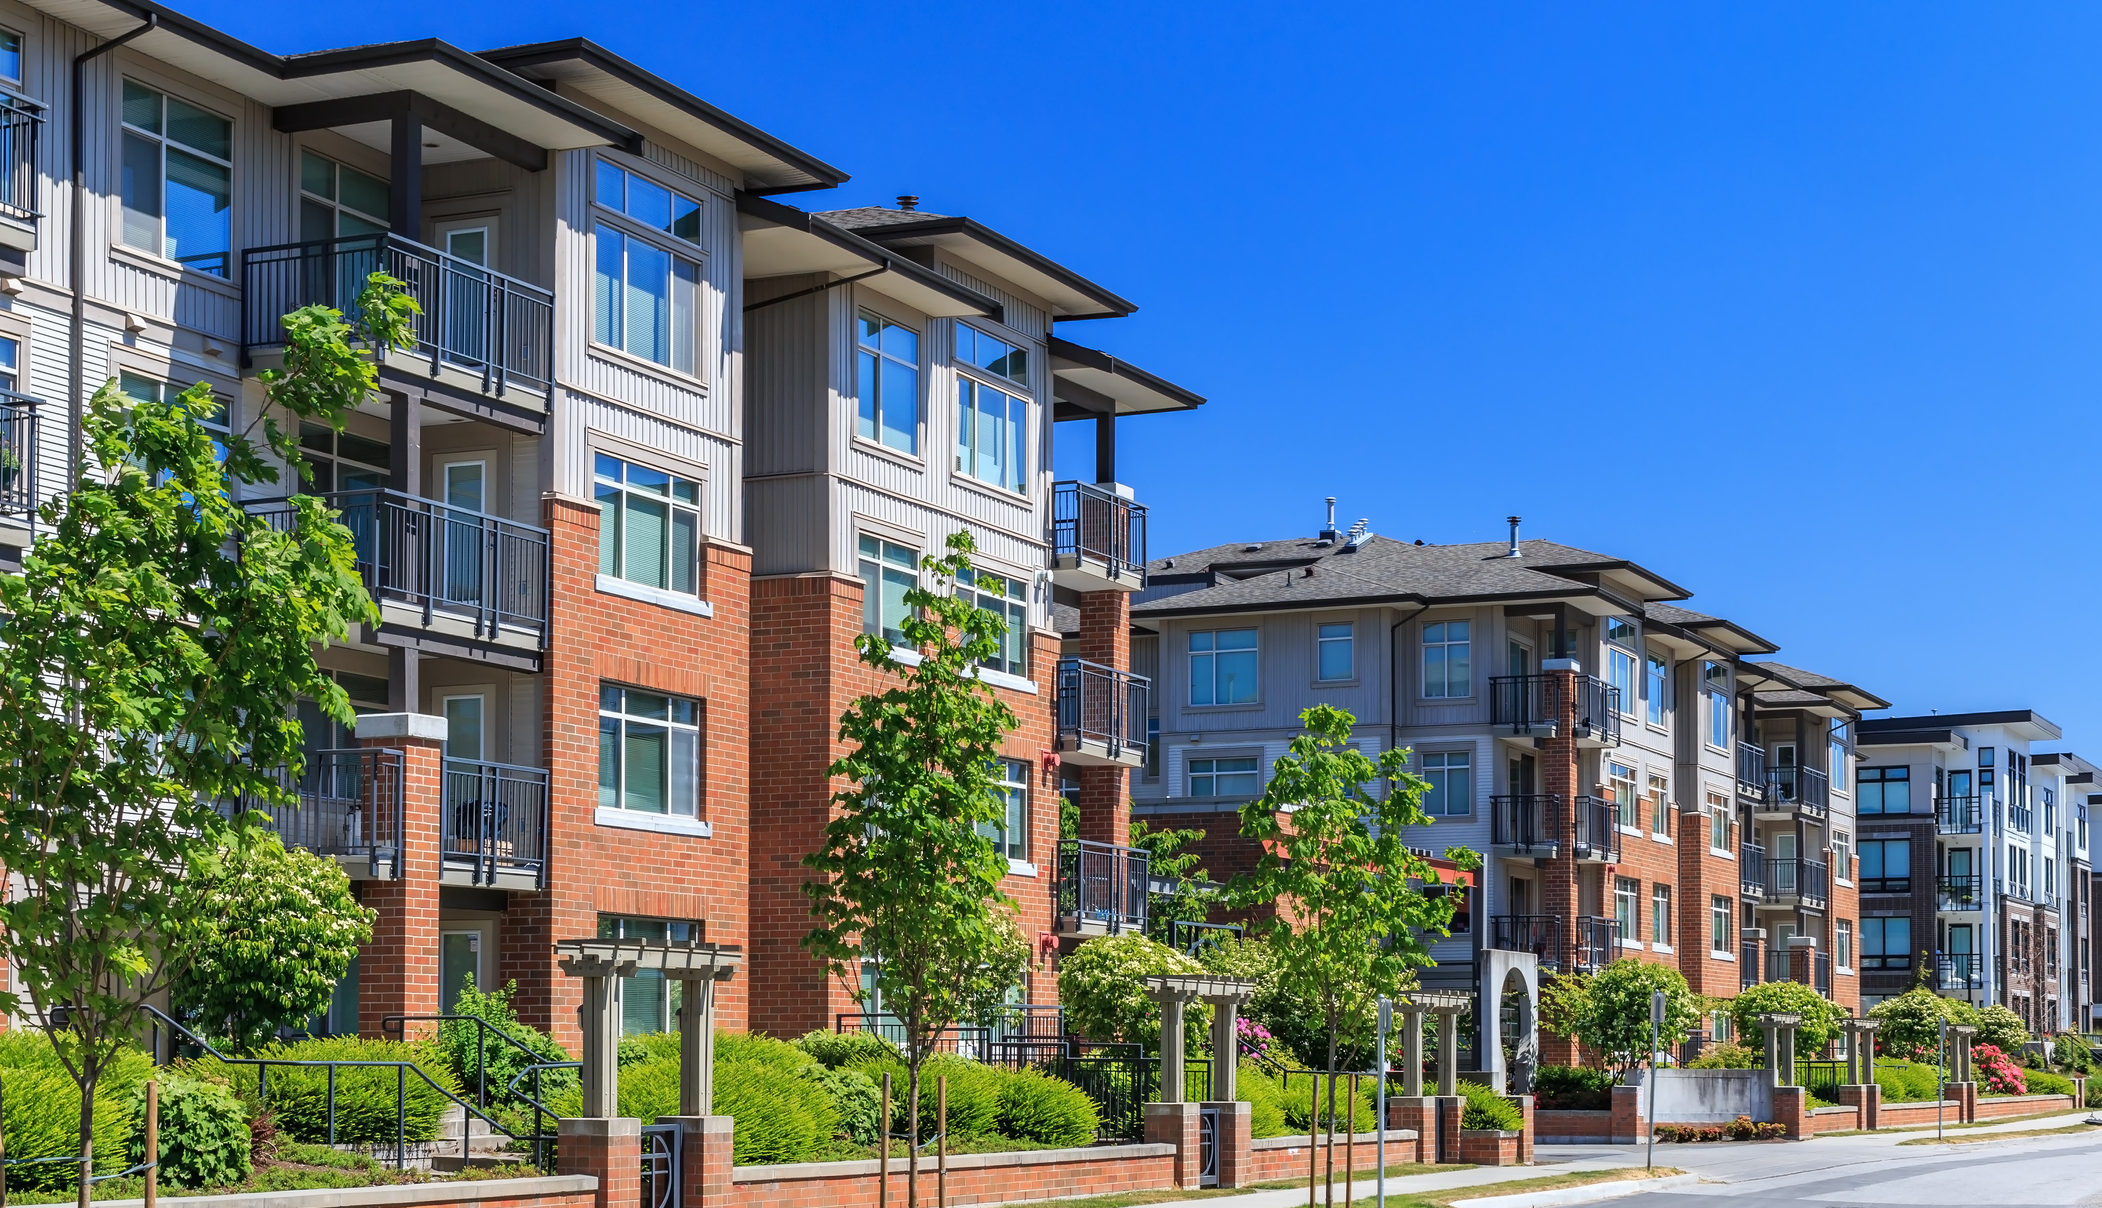 Commercial Real Estate Stone Mountain